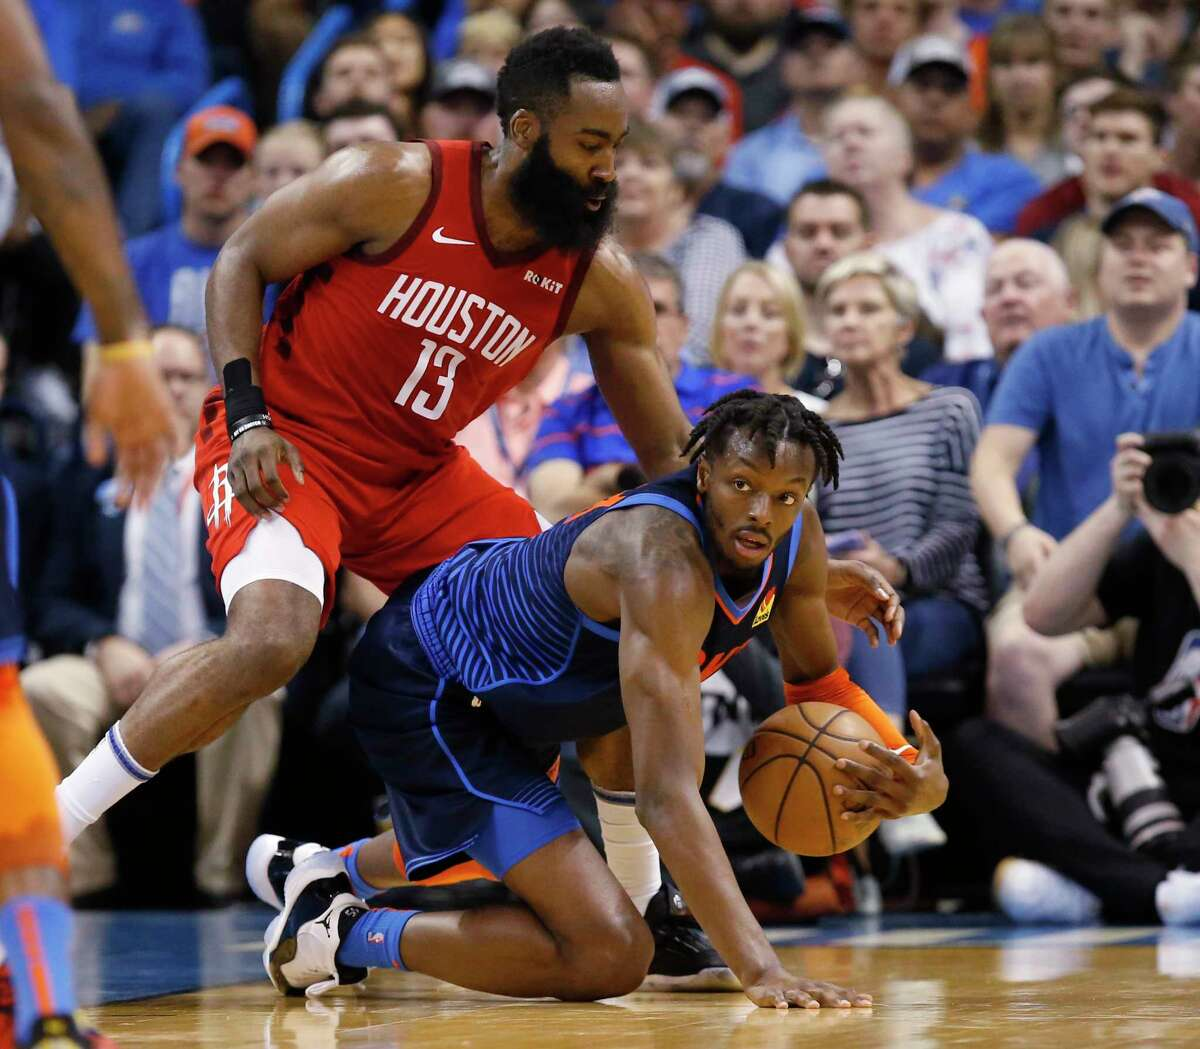 Oklahoma City Thunder forward Jerami Grant, right, grabs the ball in front of Houston Rockets guard James Harden (13) during the first half of an NBA basketball game Tuesday, April 9, 2019, in Oklahoma City. (AP Photo/Sue Ogrocki)